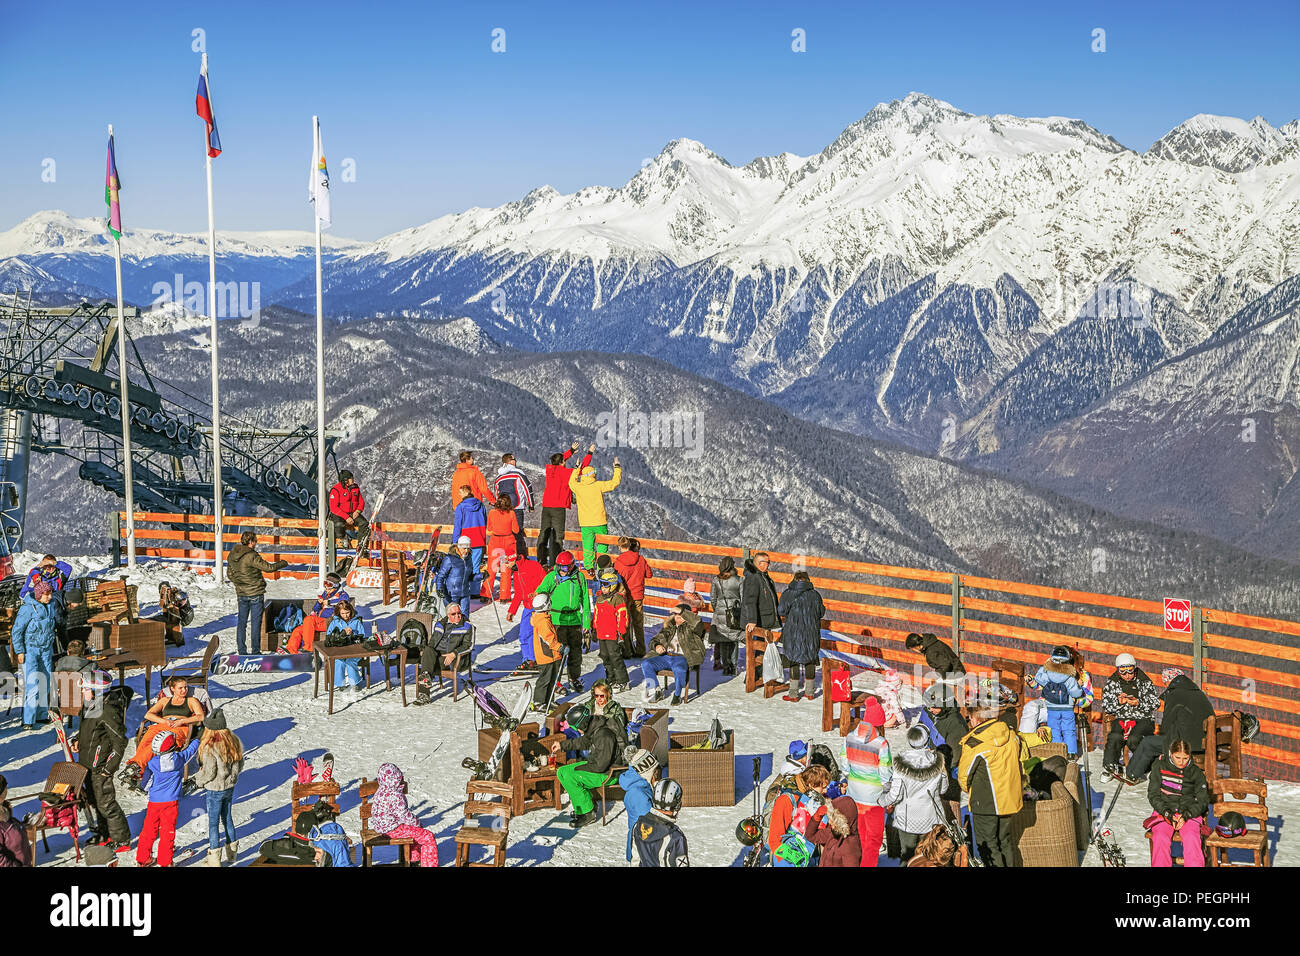 sochi, russia - december 19, 2015: observation site at the ski